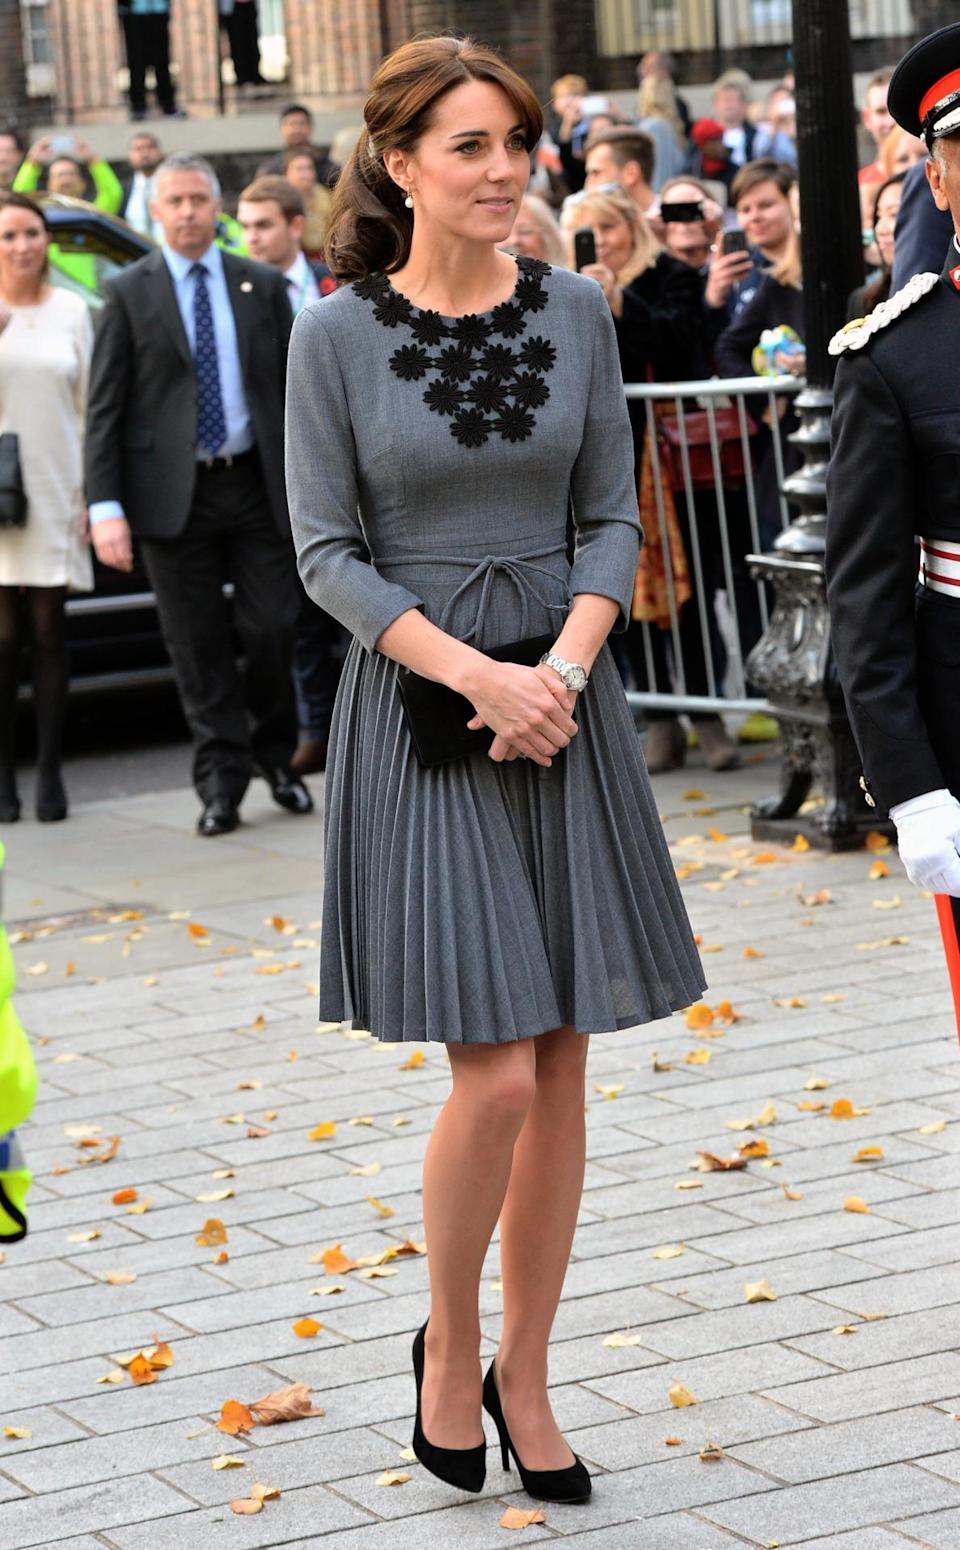 <p>For an engagement at a children's mentoring programme, Kate wore a grey Orla Kiely dress from the designer's AW11 collection. Stuart Weitzman pumps and a black suede Mulberry clutch completed her look. </p><p><i>[Photo: PA]</i></p>